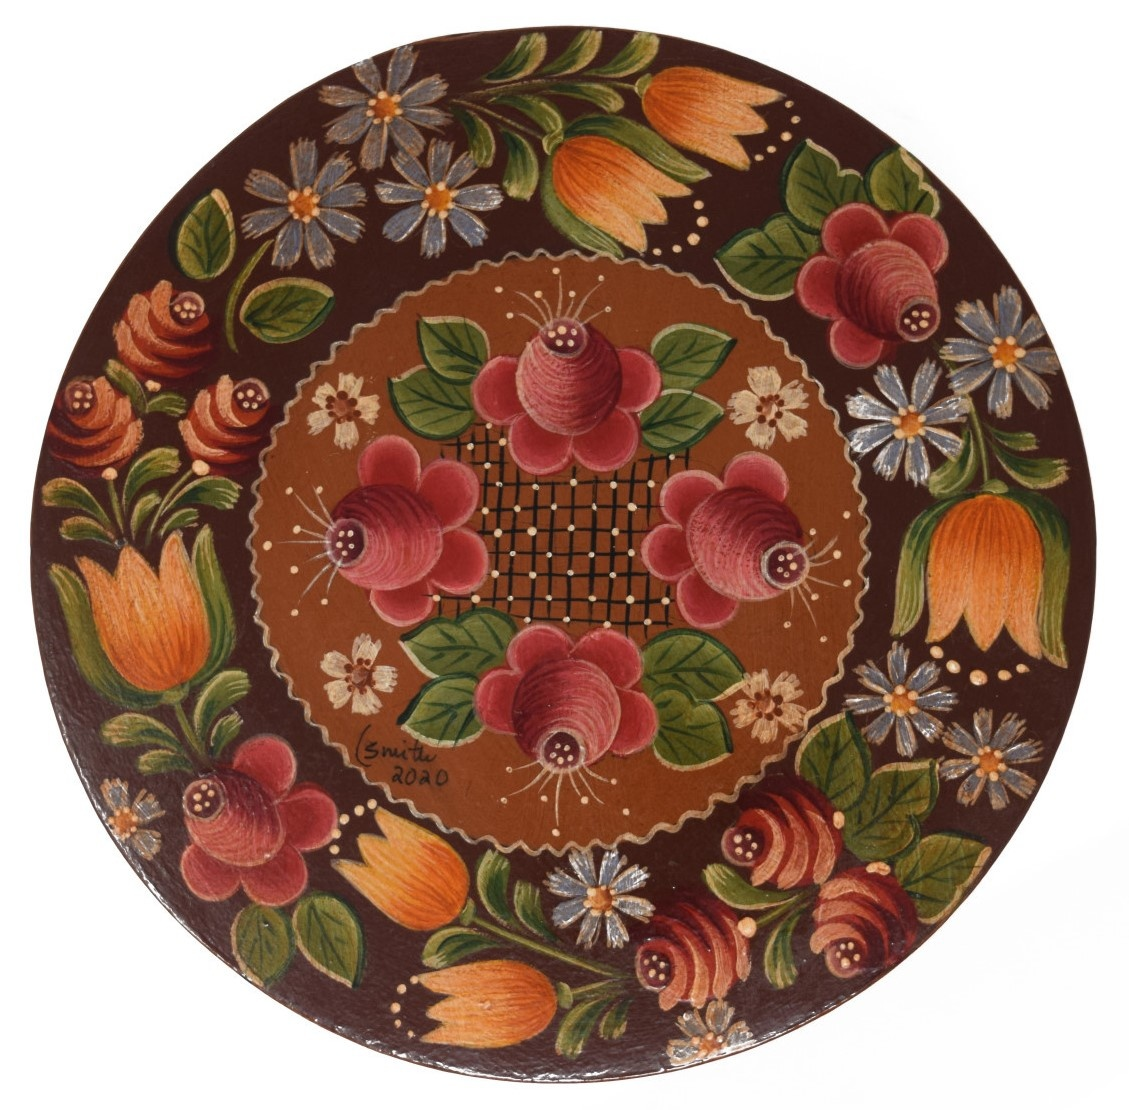 Round box brown with light brown center and flowers-1